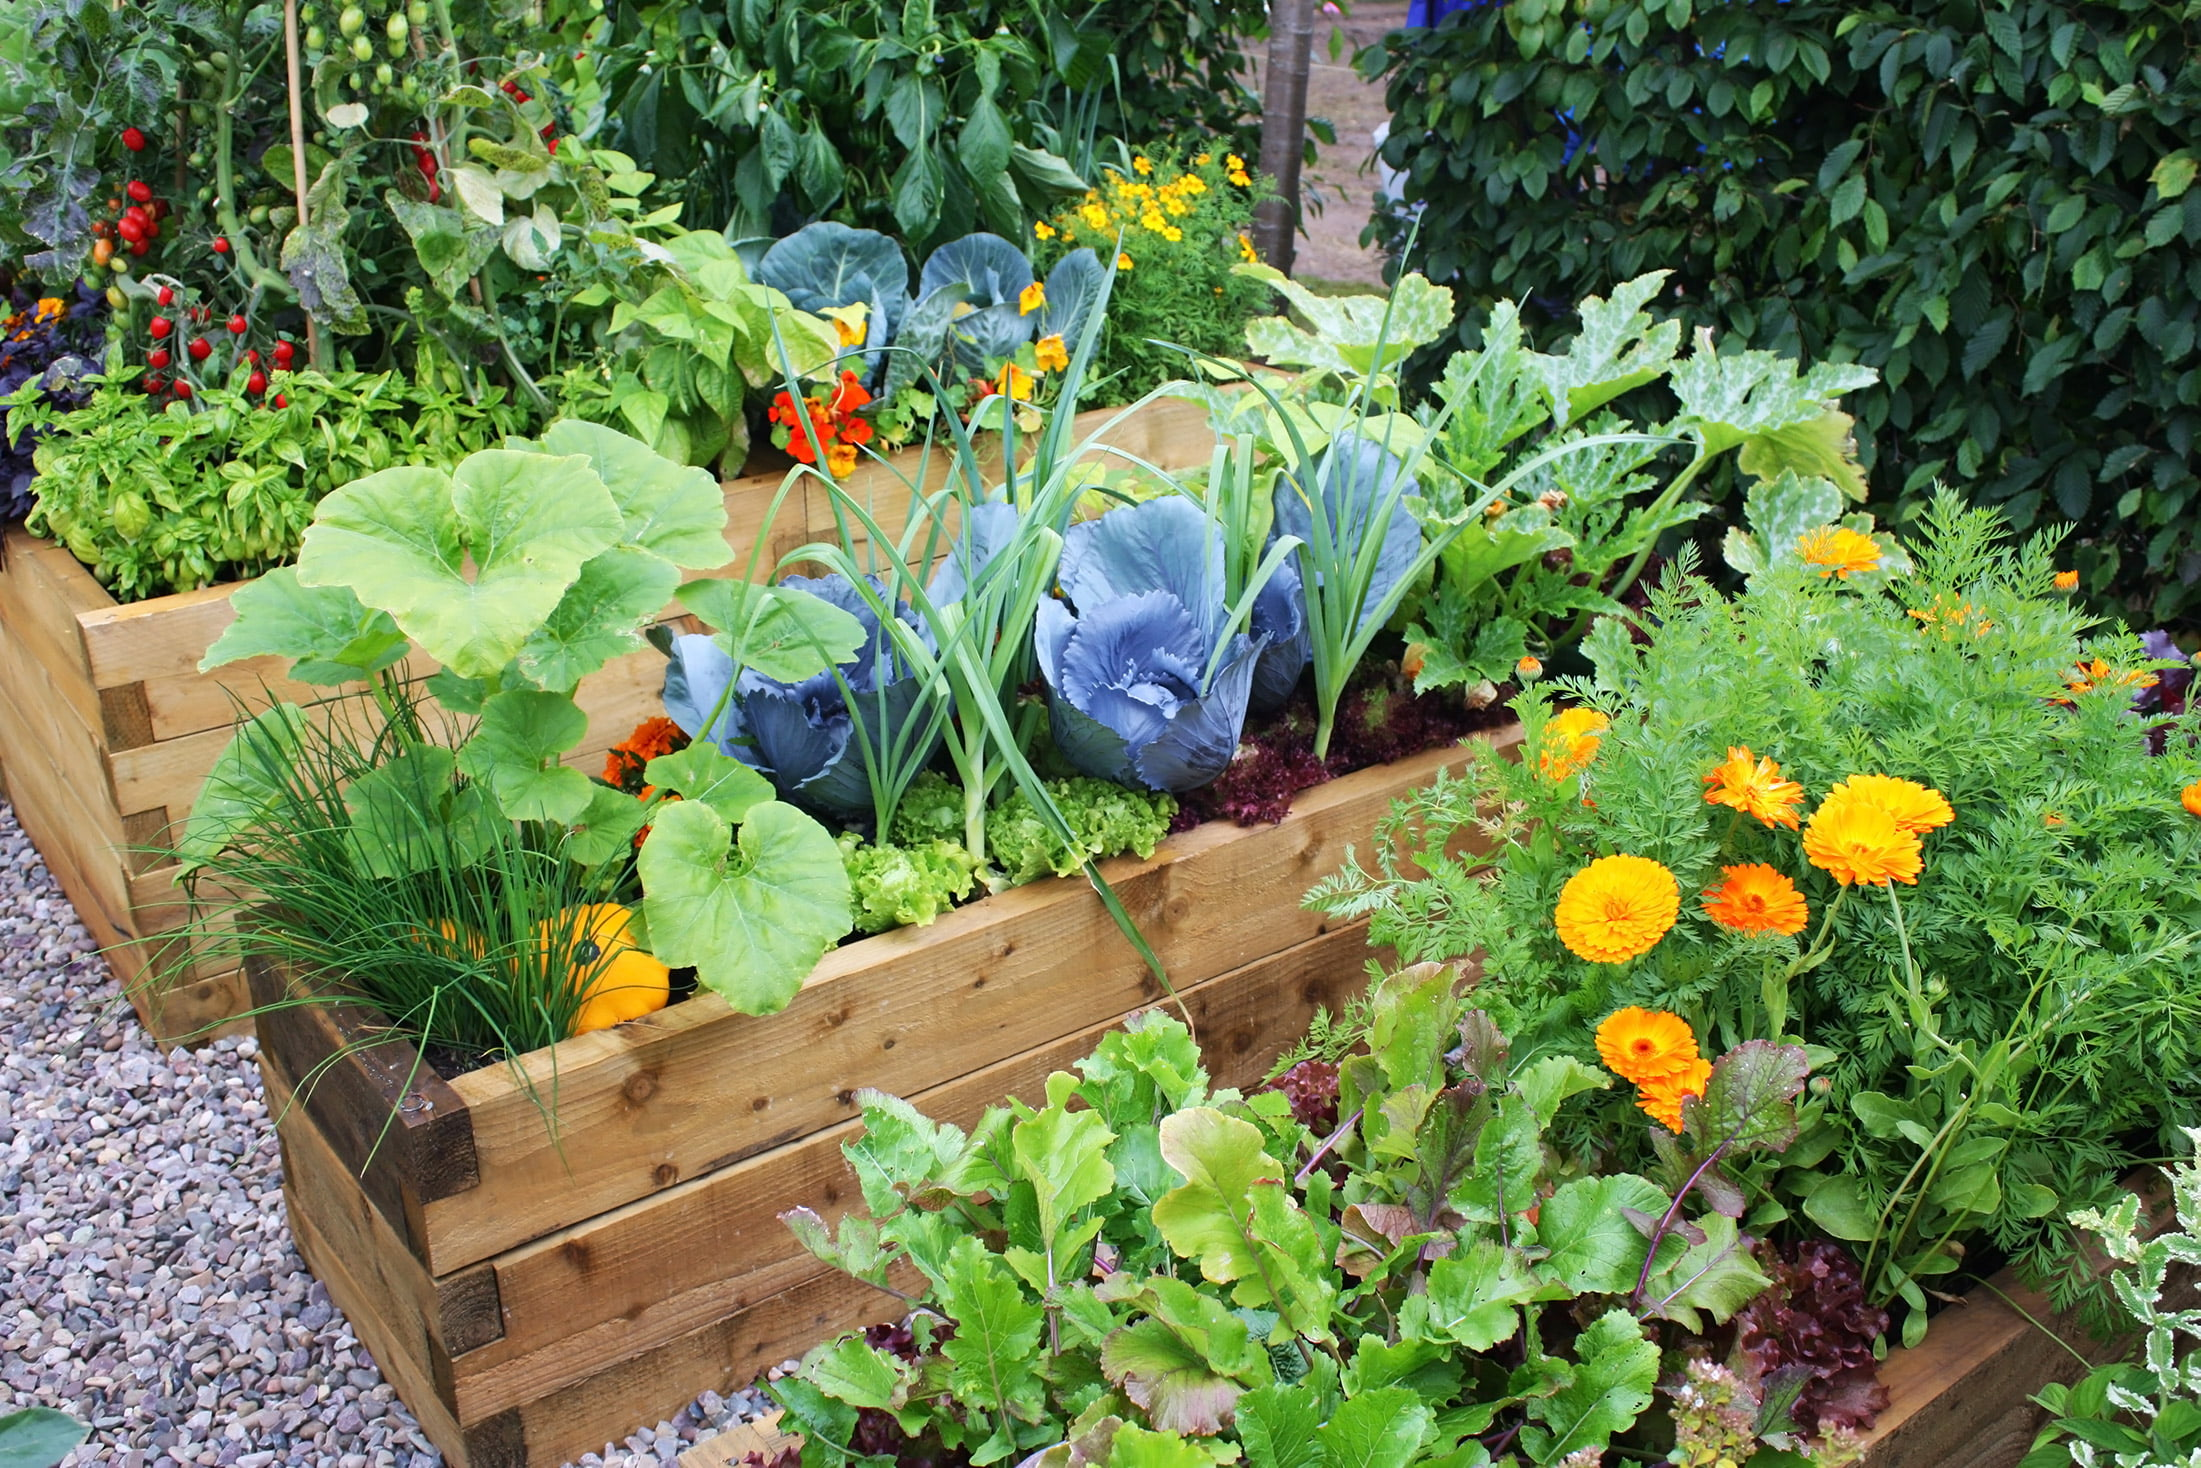 Growing your own for one – vegetables